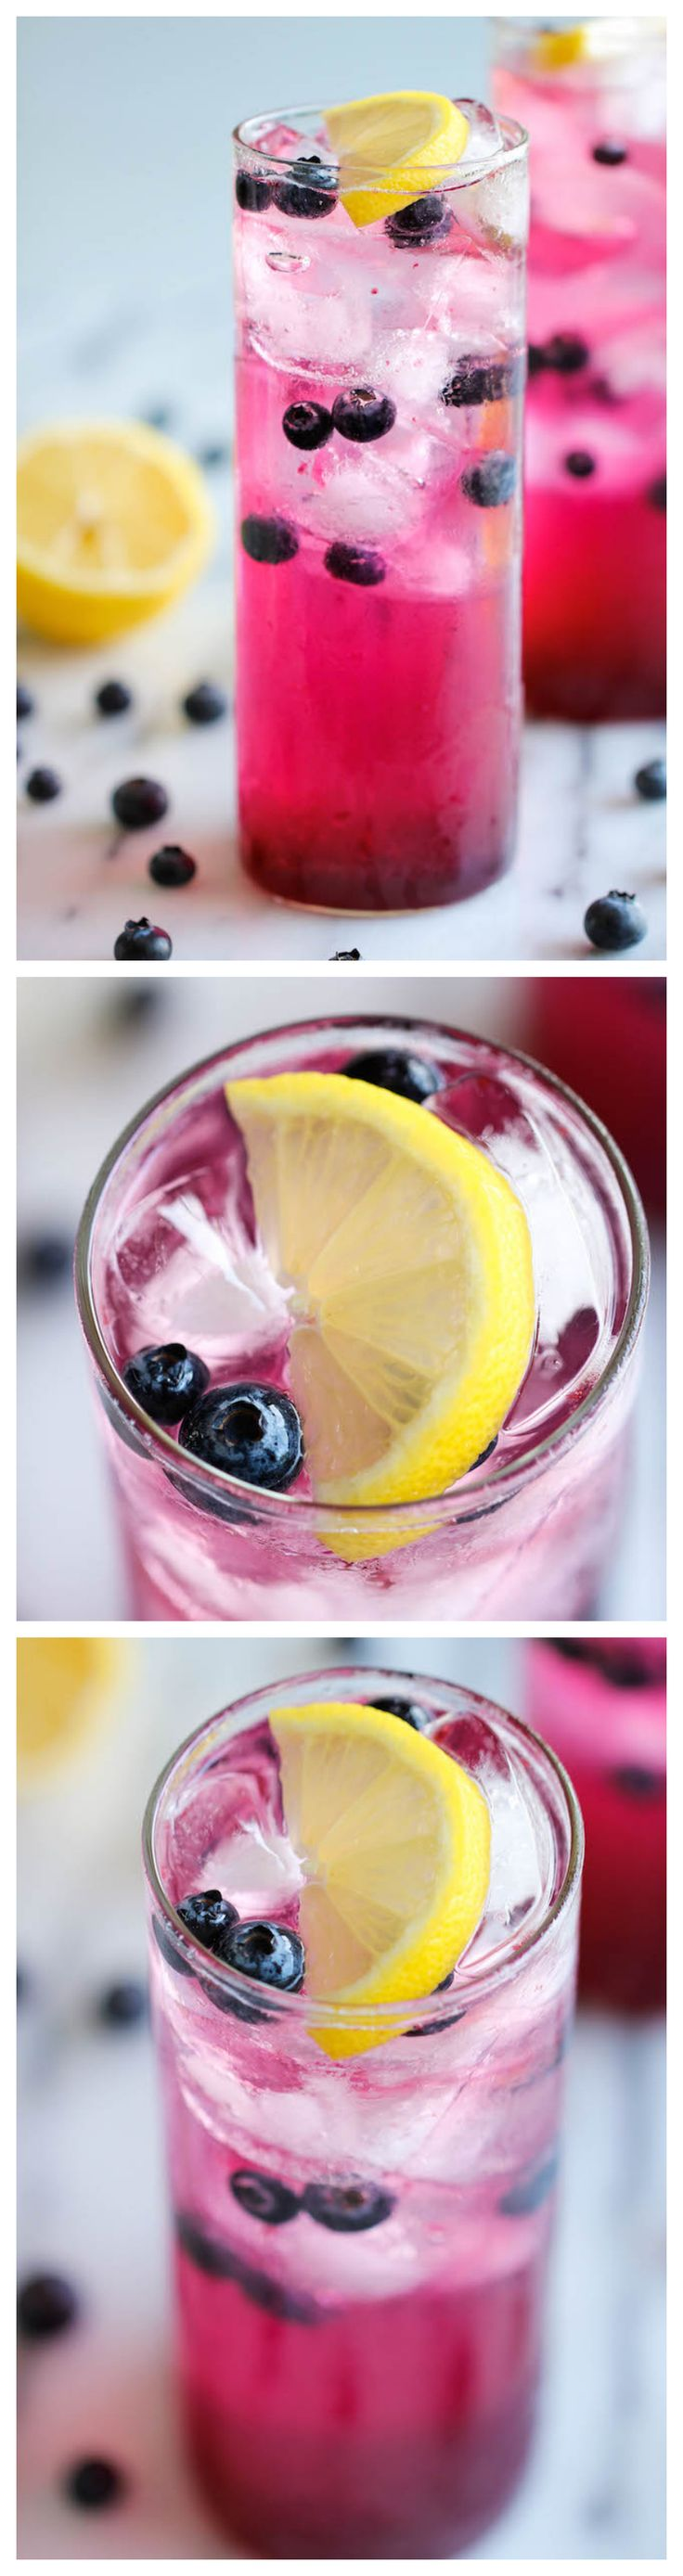 Blueberry Lemonade - Made with a super easy blueberry syrup, this lemonade is so refreshing, sweet and tangy. It's the perfect way to cool down on a hot day! @damndelicious